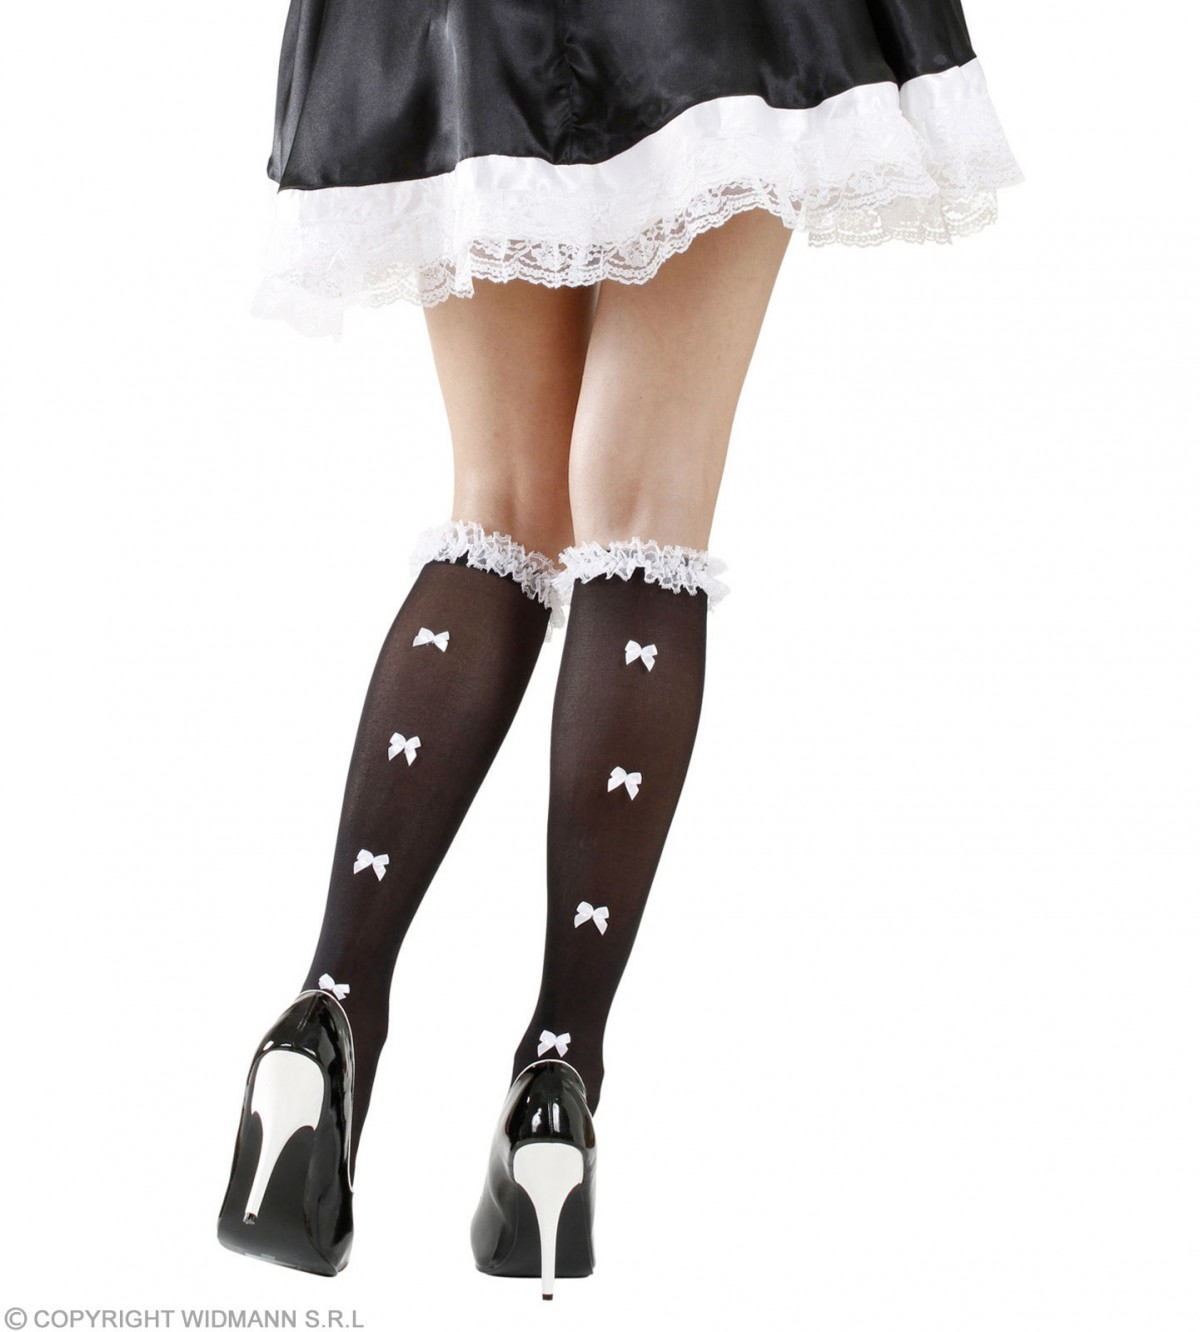 7decdde8b3777 Ladies Black French Maid Style Socks With Ruffle Lace Trim & White Bows